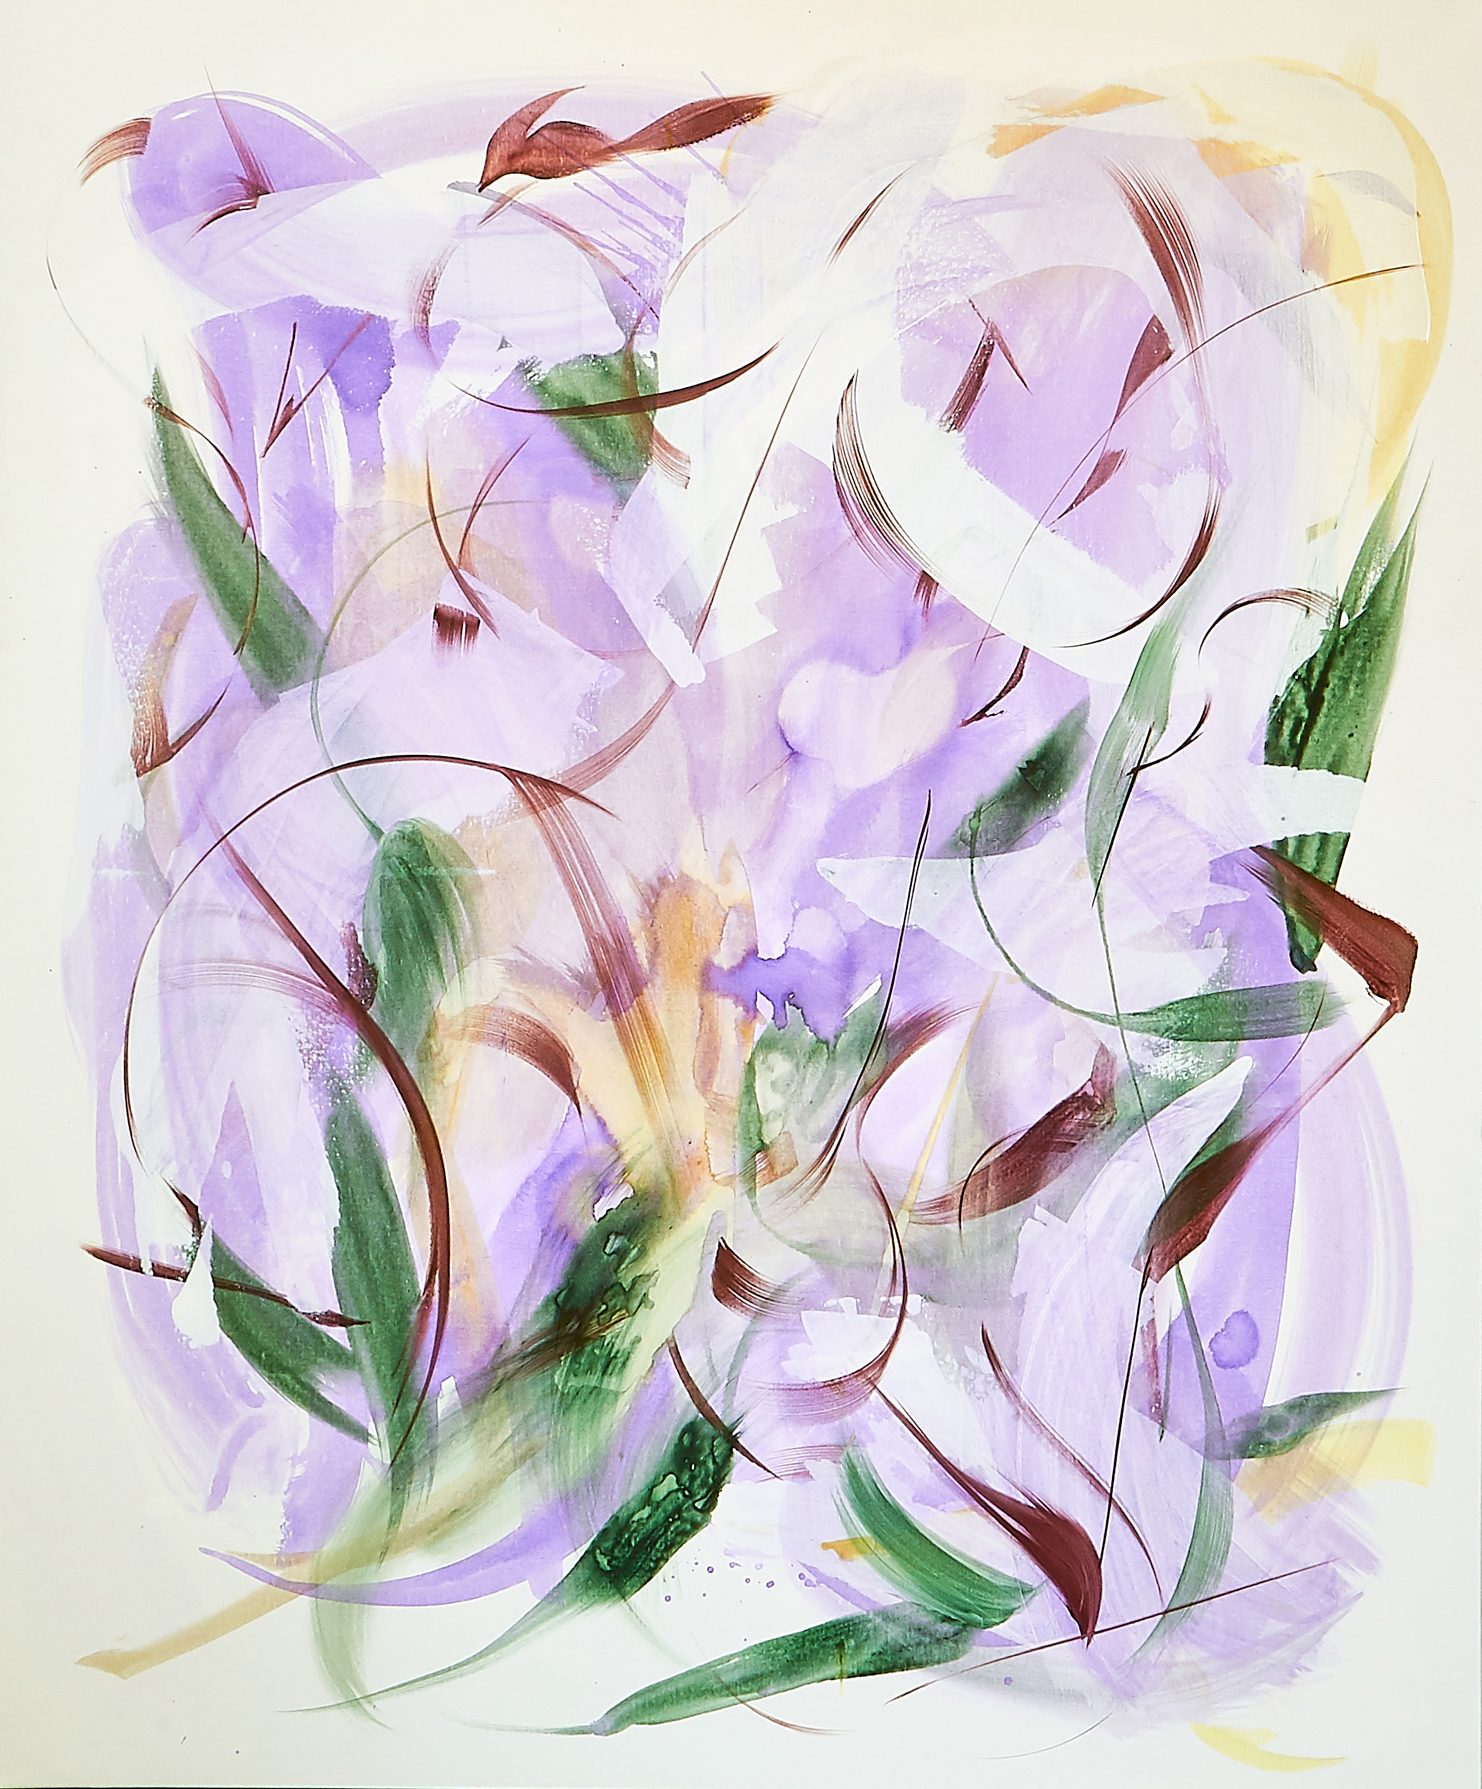 Huang Yanyan   Purple Poem III  2019 Acrylic on Canvas 152.4 x 182.9 cm  Available